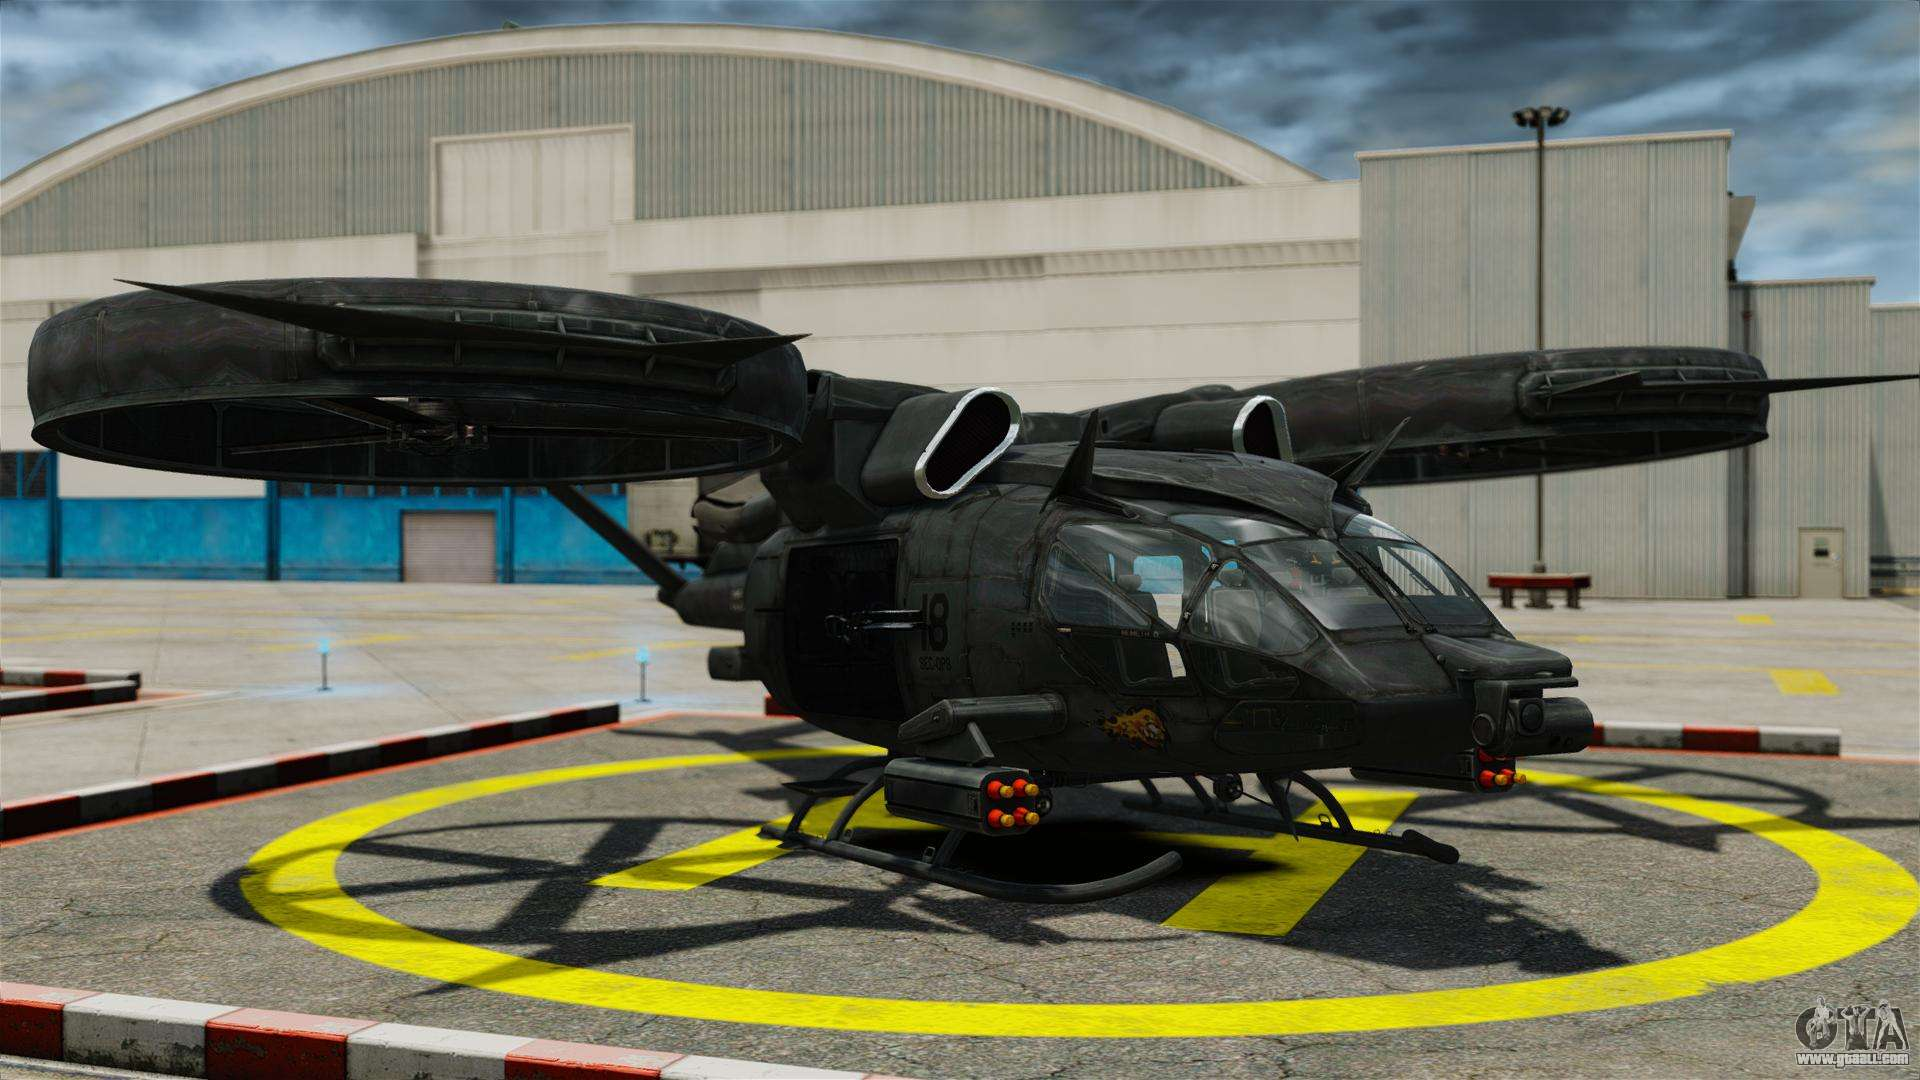 helicopter with 2 rotors with 27061 Transportnyy Vertolet Sa 2 Samson on How Are Folding Wings Managed likewise Helicoptere Tele mande furthermore 27061 Transportnyy Vertolet Sa 2 Samson together with Why Arent Contra Rotors Used On The V 22 Osprey additionally Seaking other.